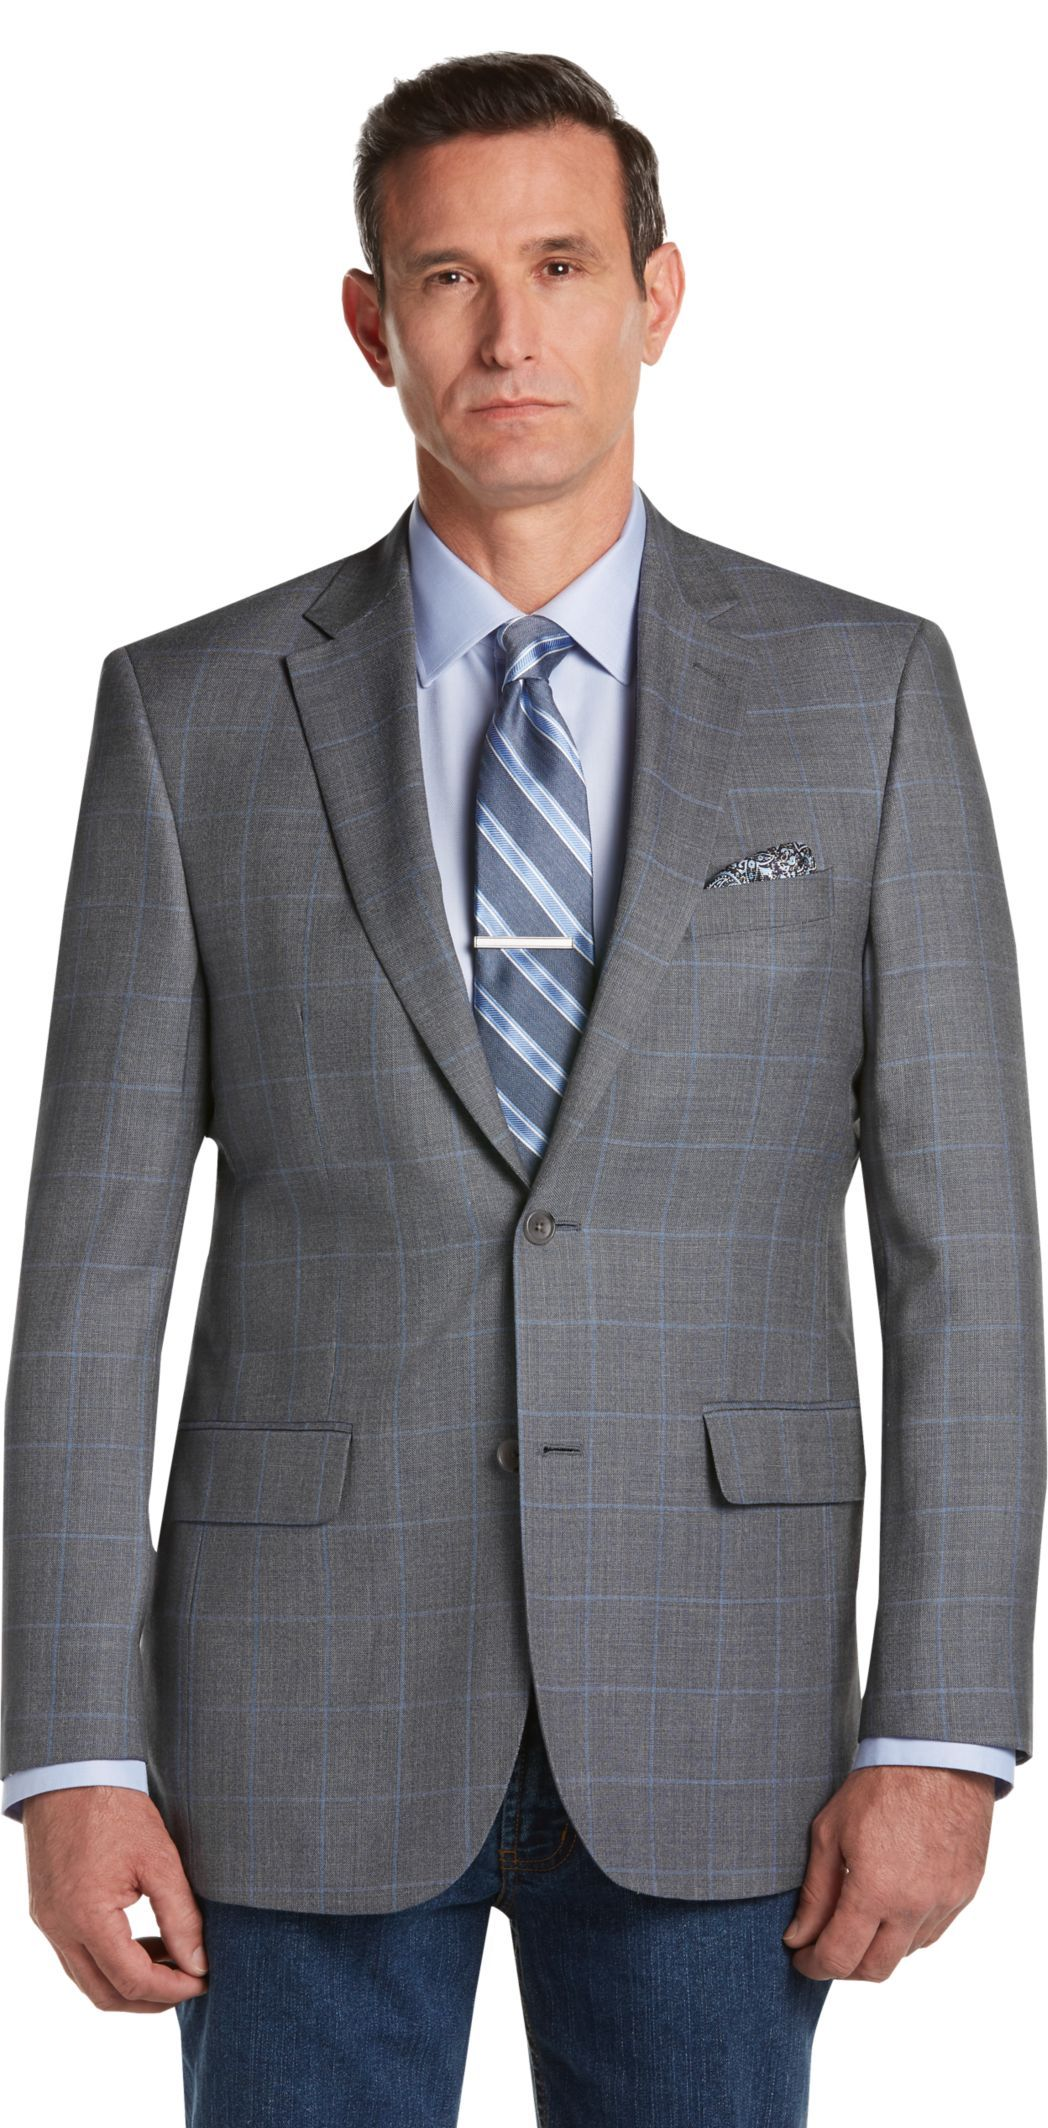 Signature Imperial Blend Collection Tailored Fit